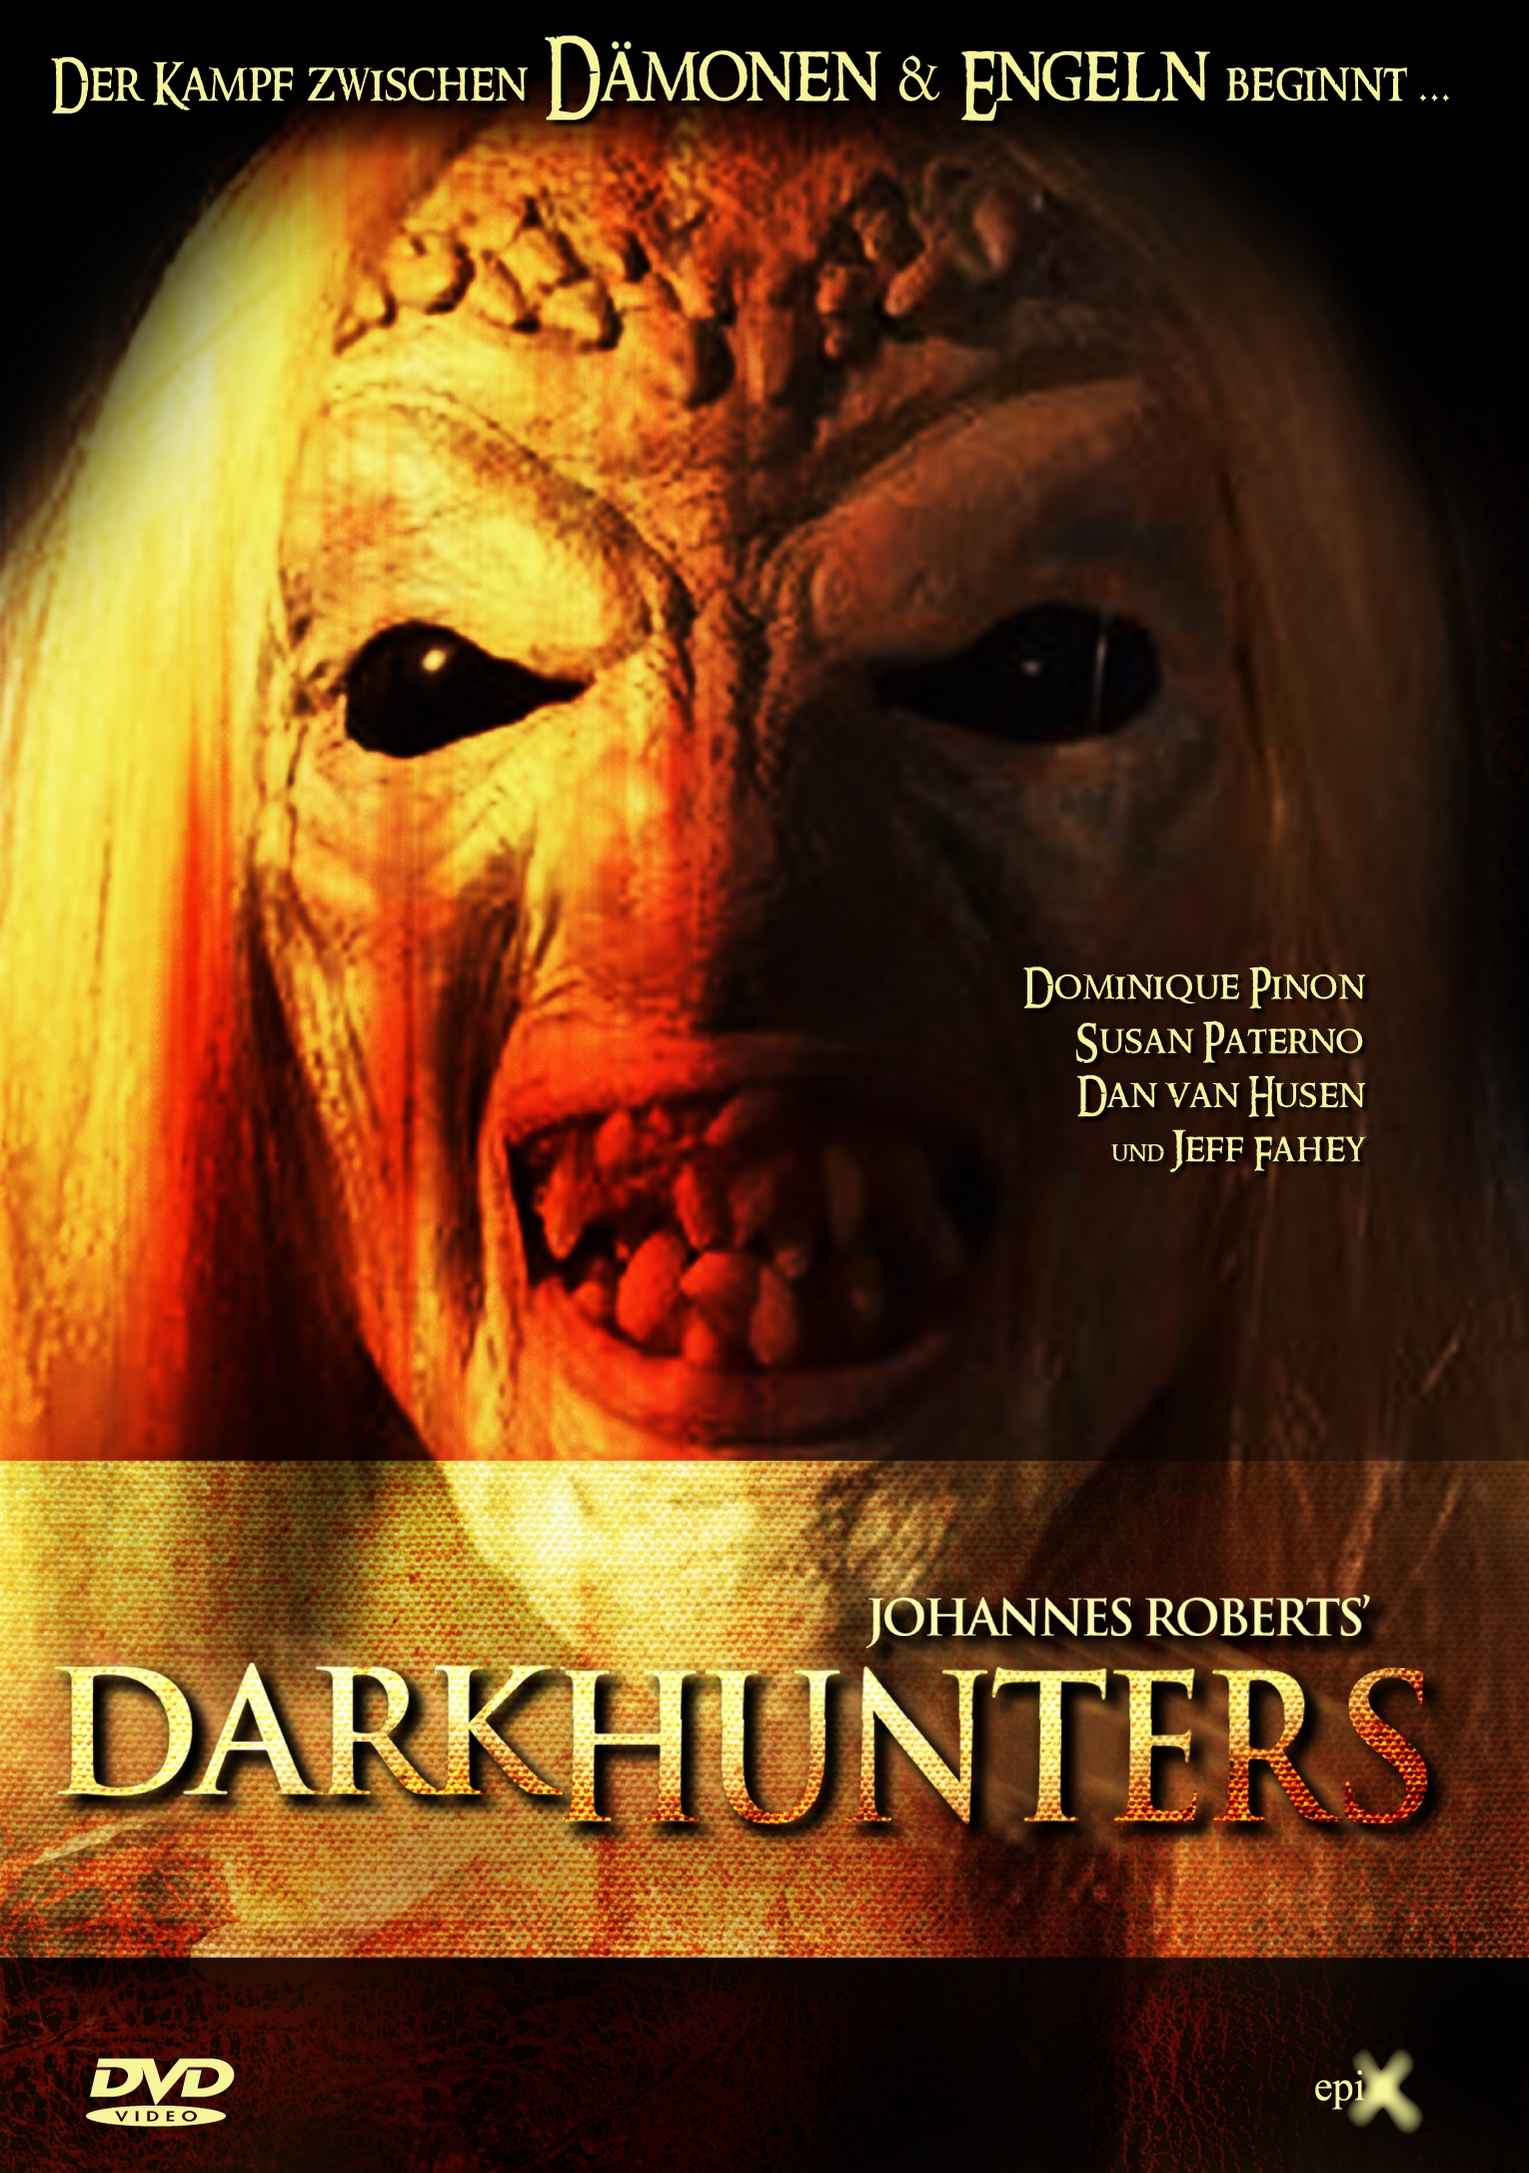 DARKHUNTERS - Frontcover